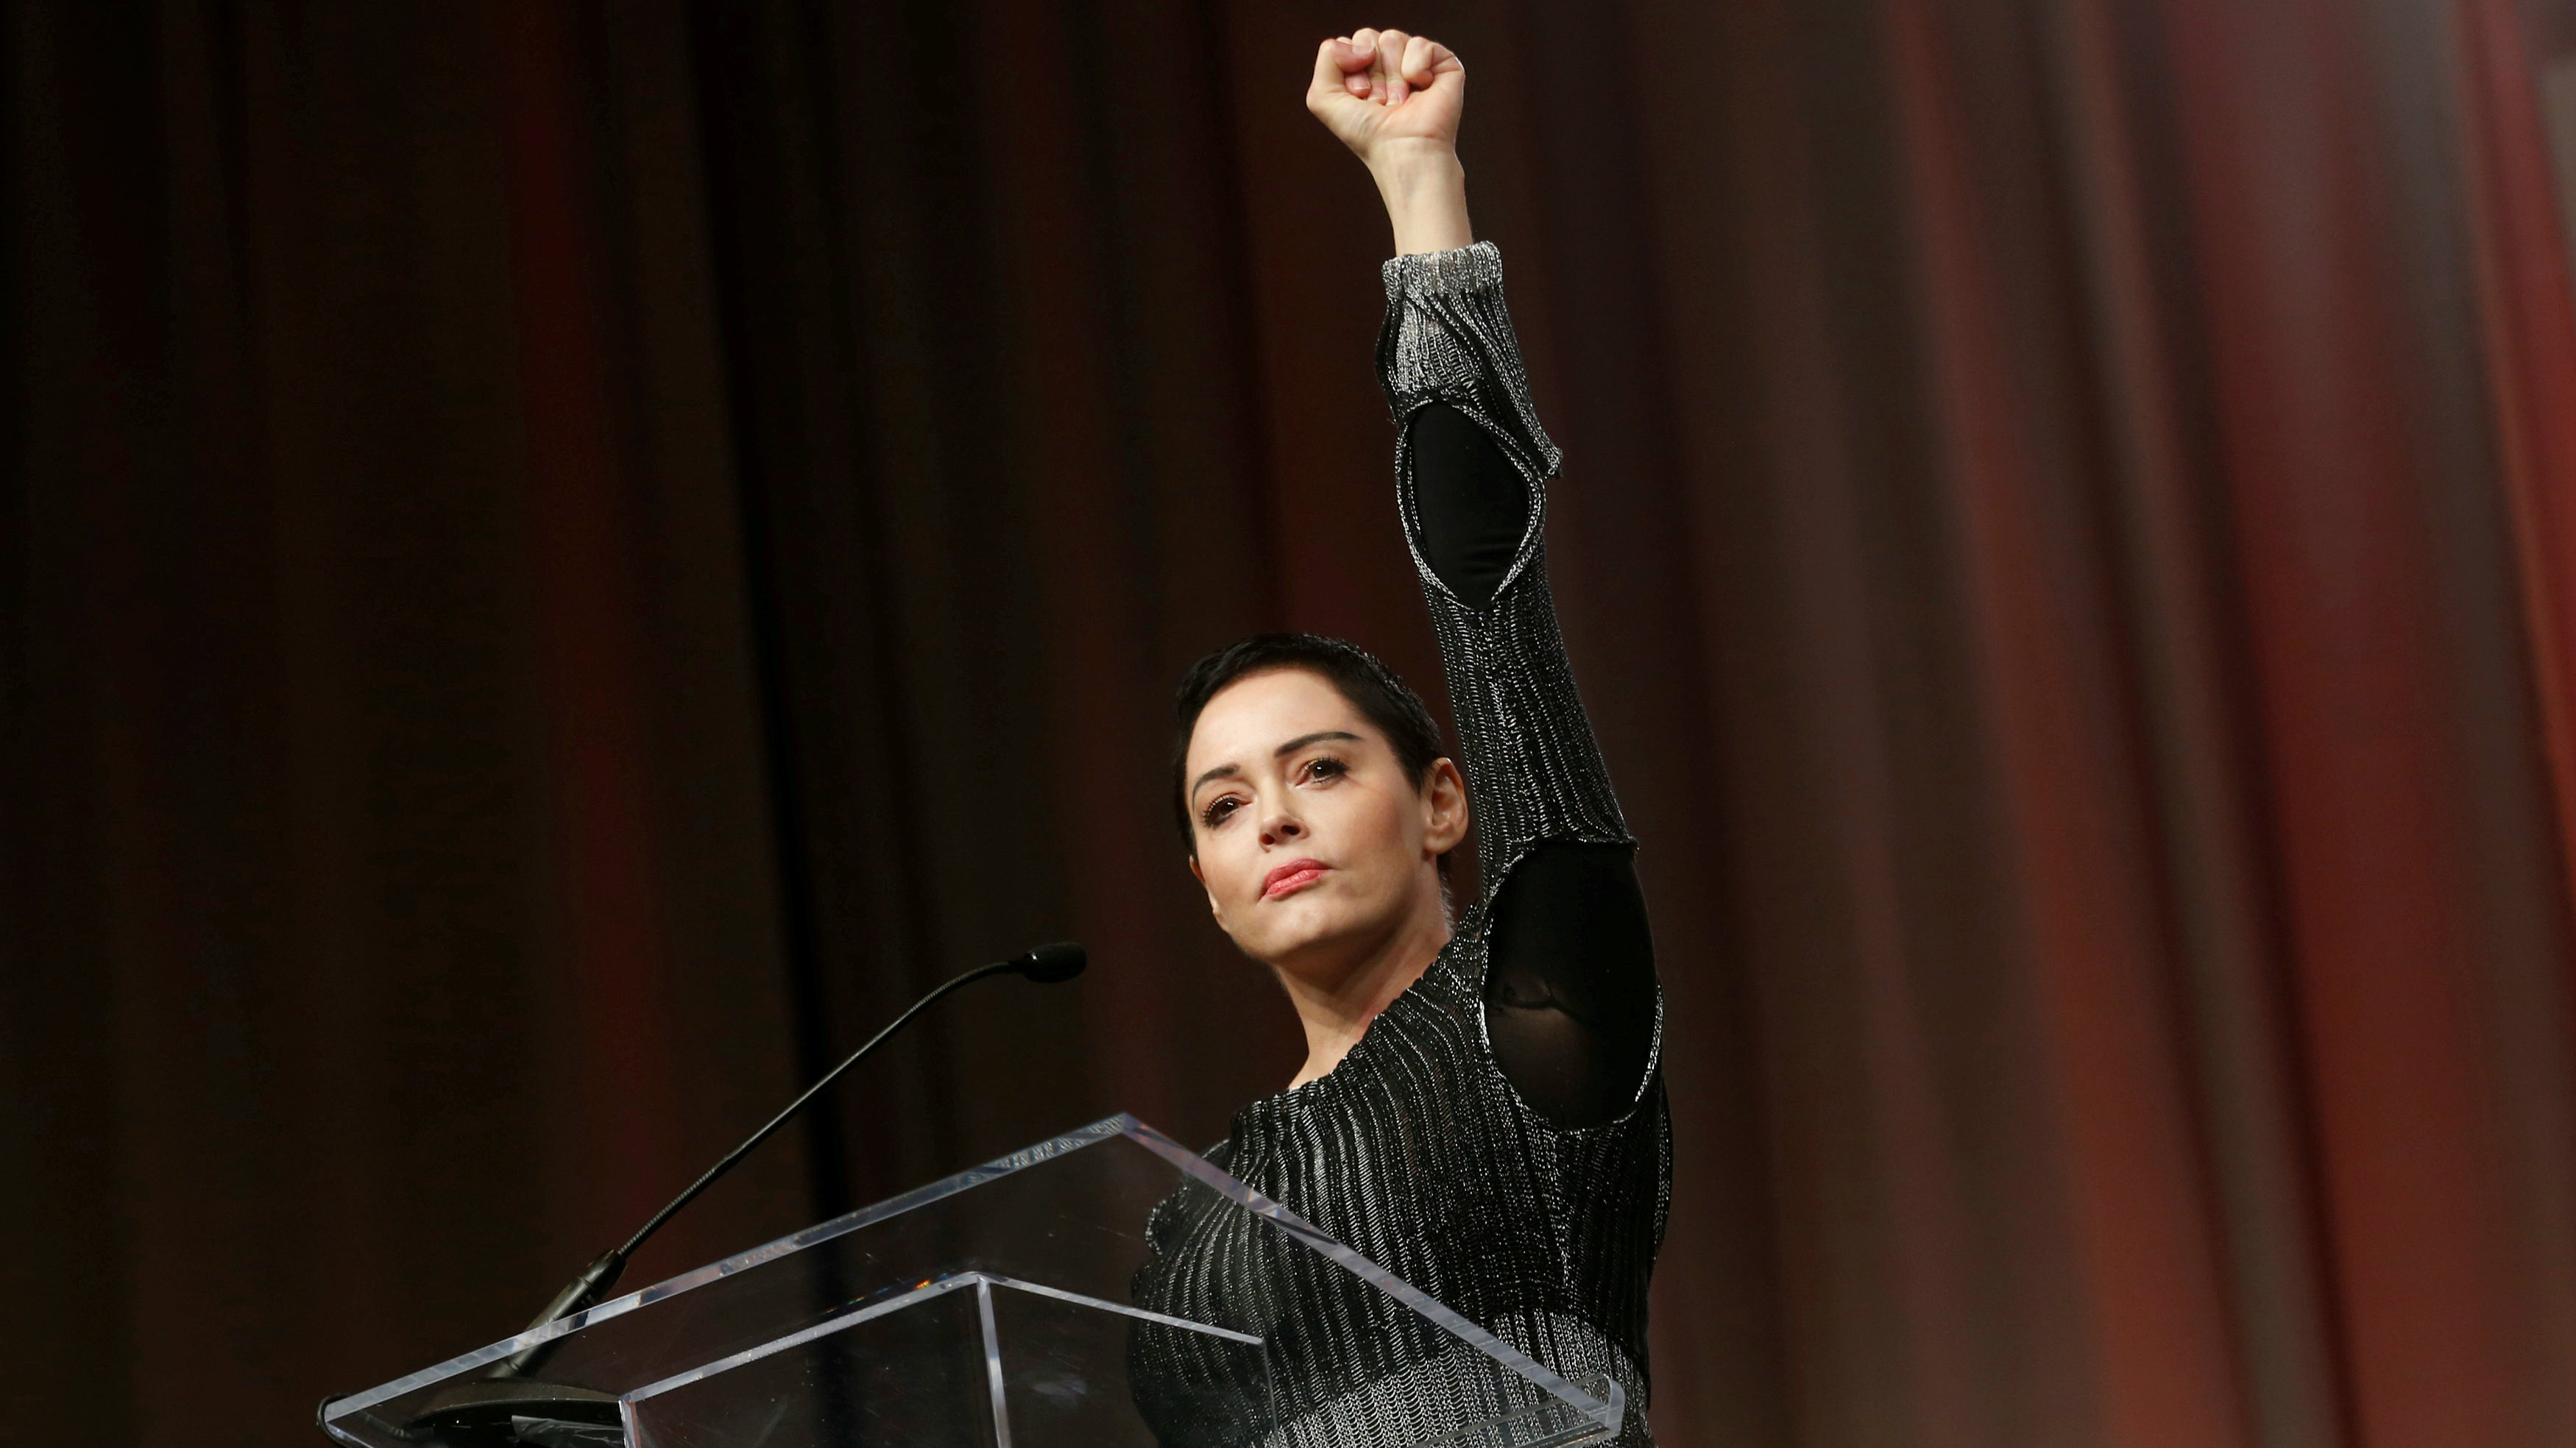 rosemcgowan silence breakers time person of the year 2017